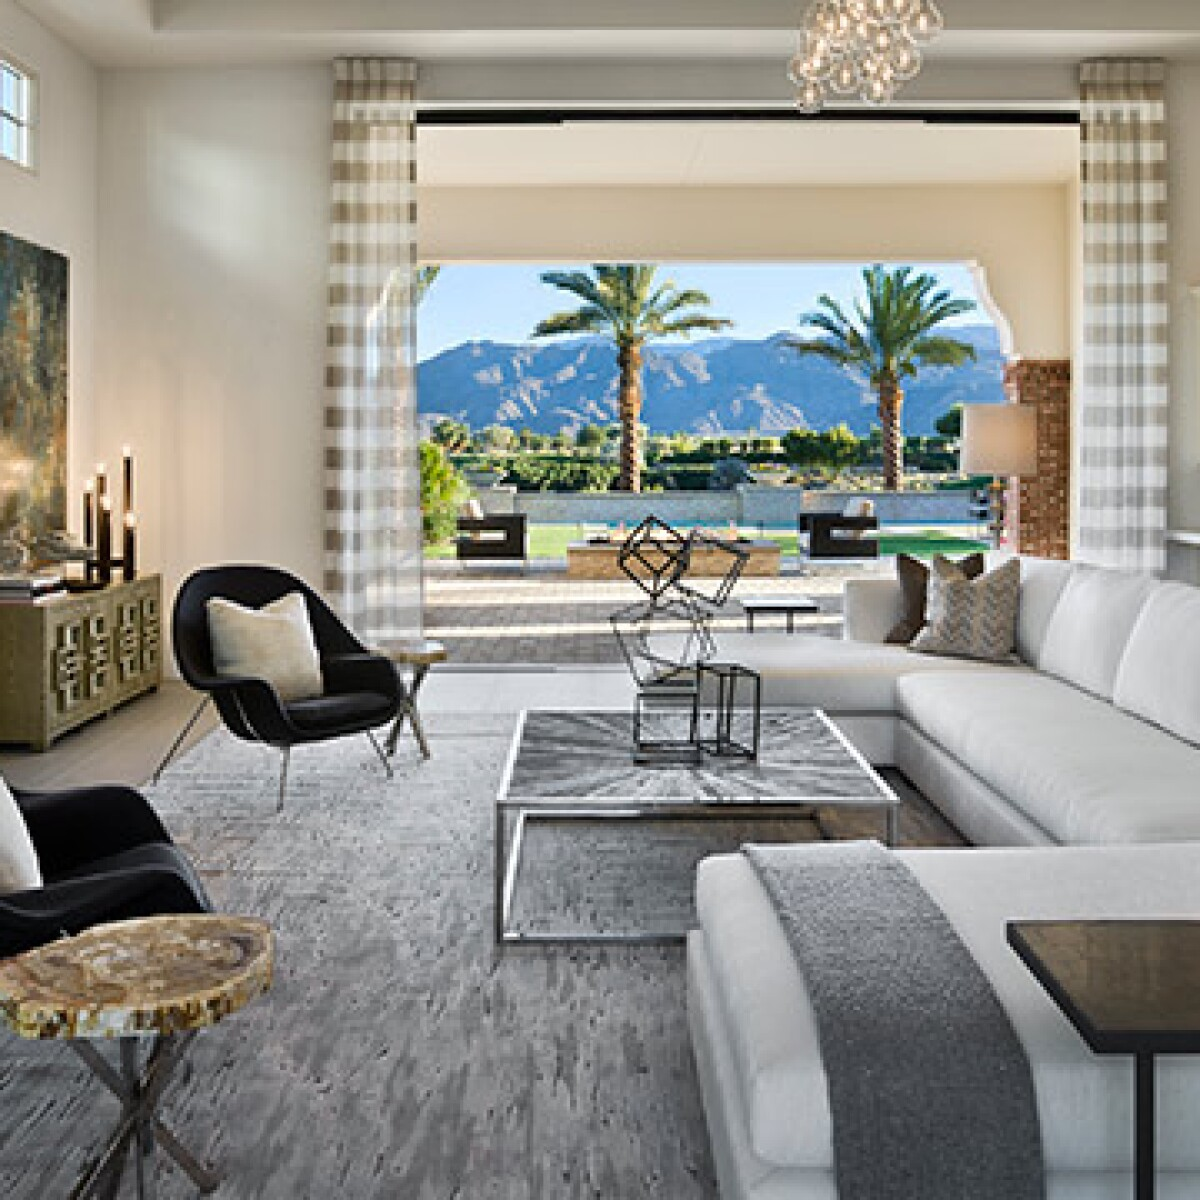 How to decorate a room with a view 20th century design sothebys